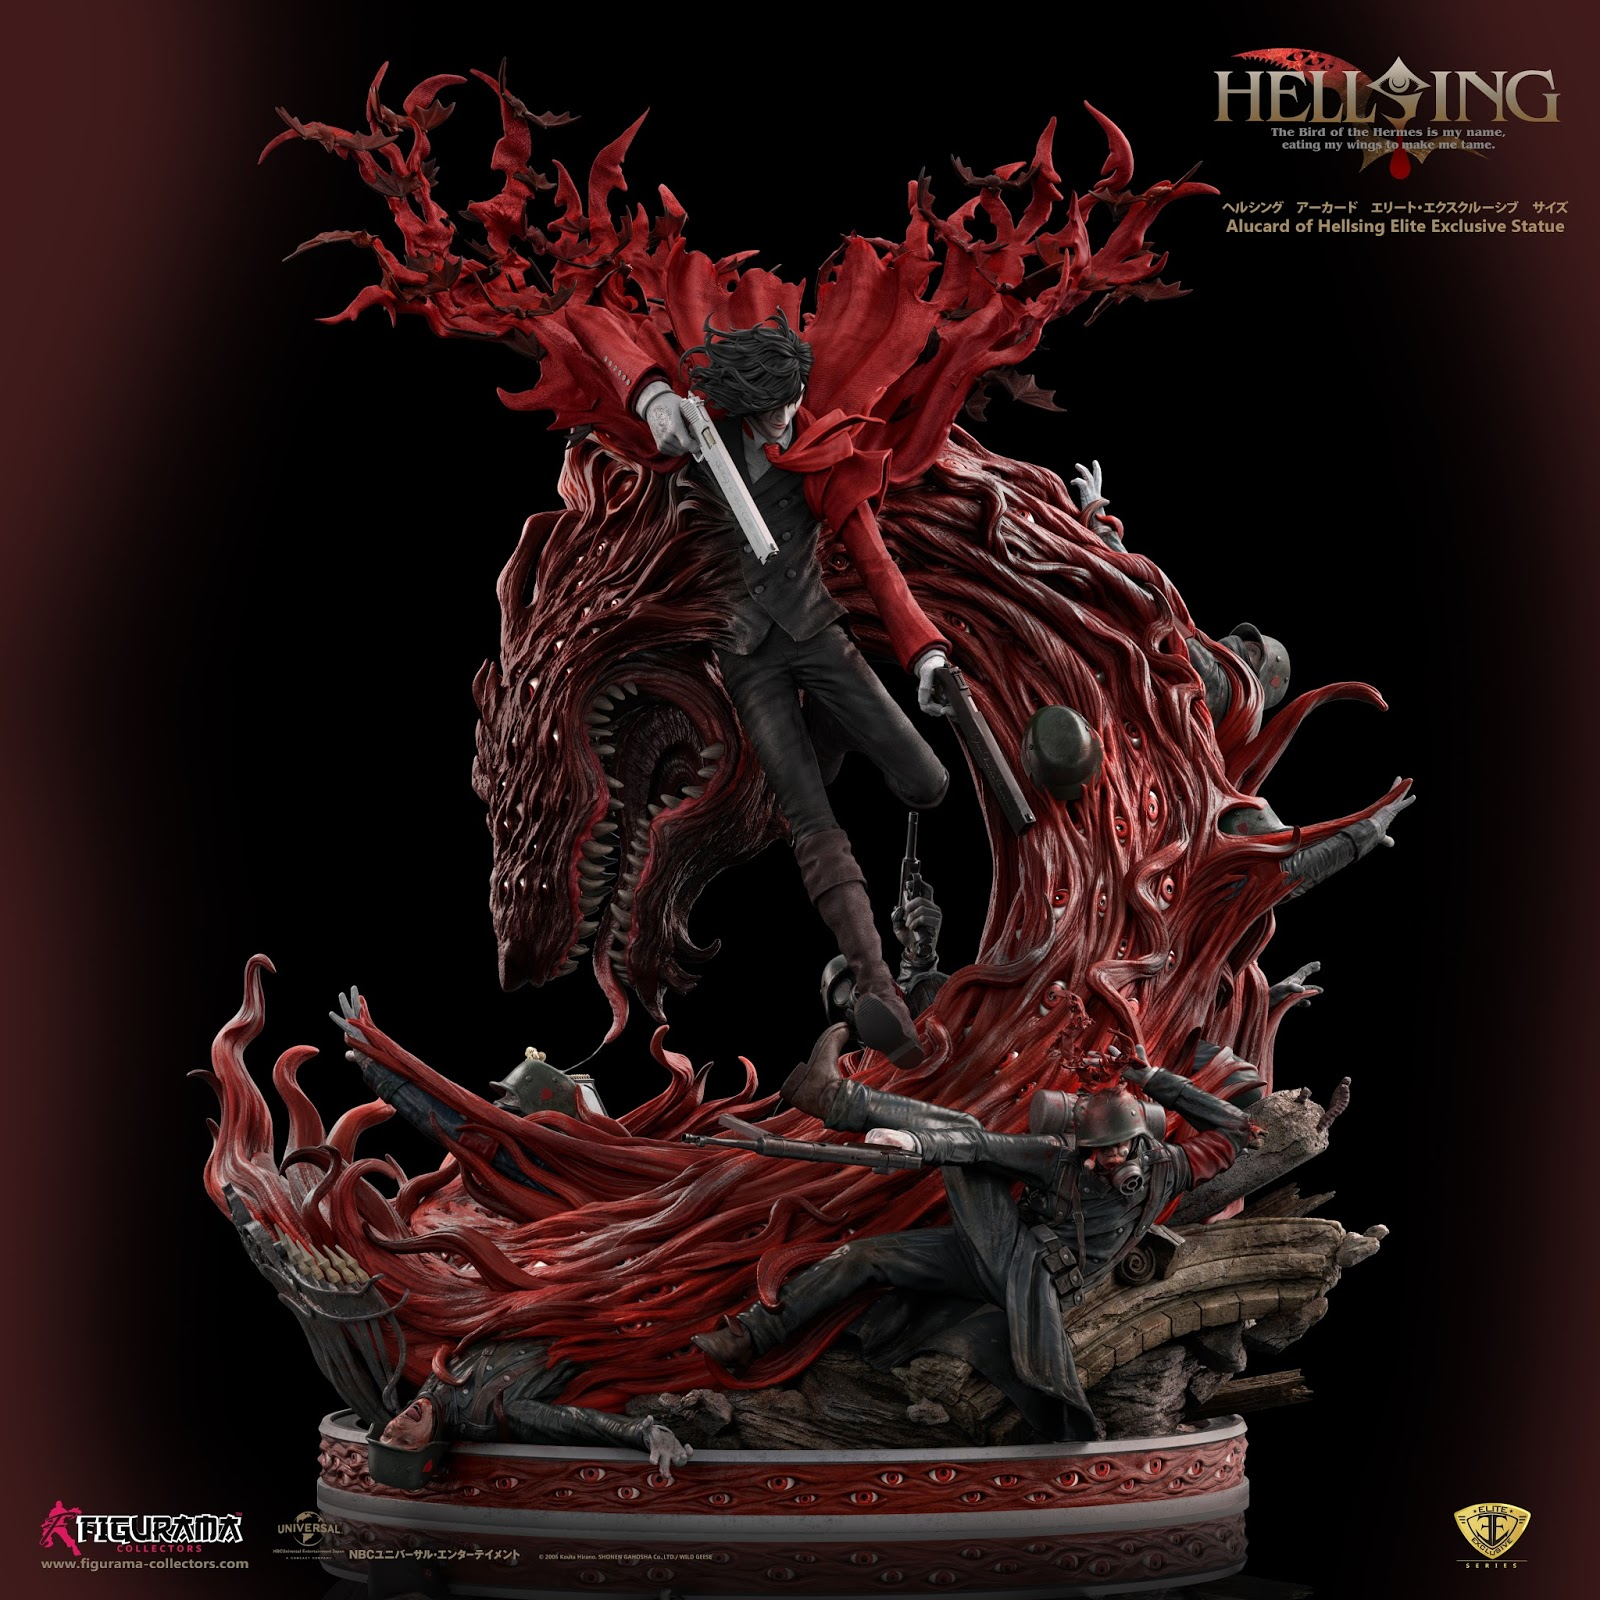 Hellsing Ultimate - Alucard Elite Exclusive statue (Figurama Collectors)